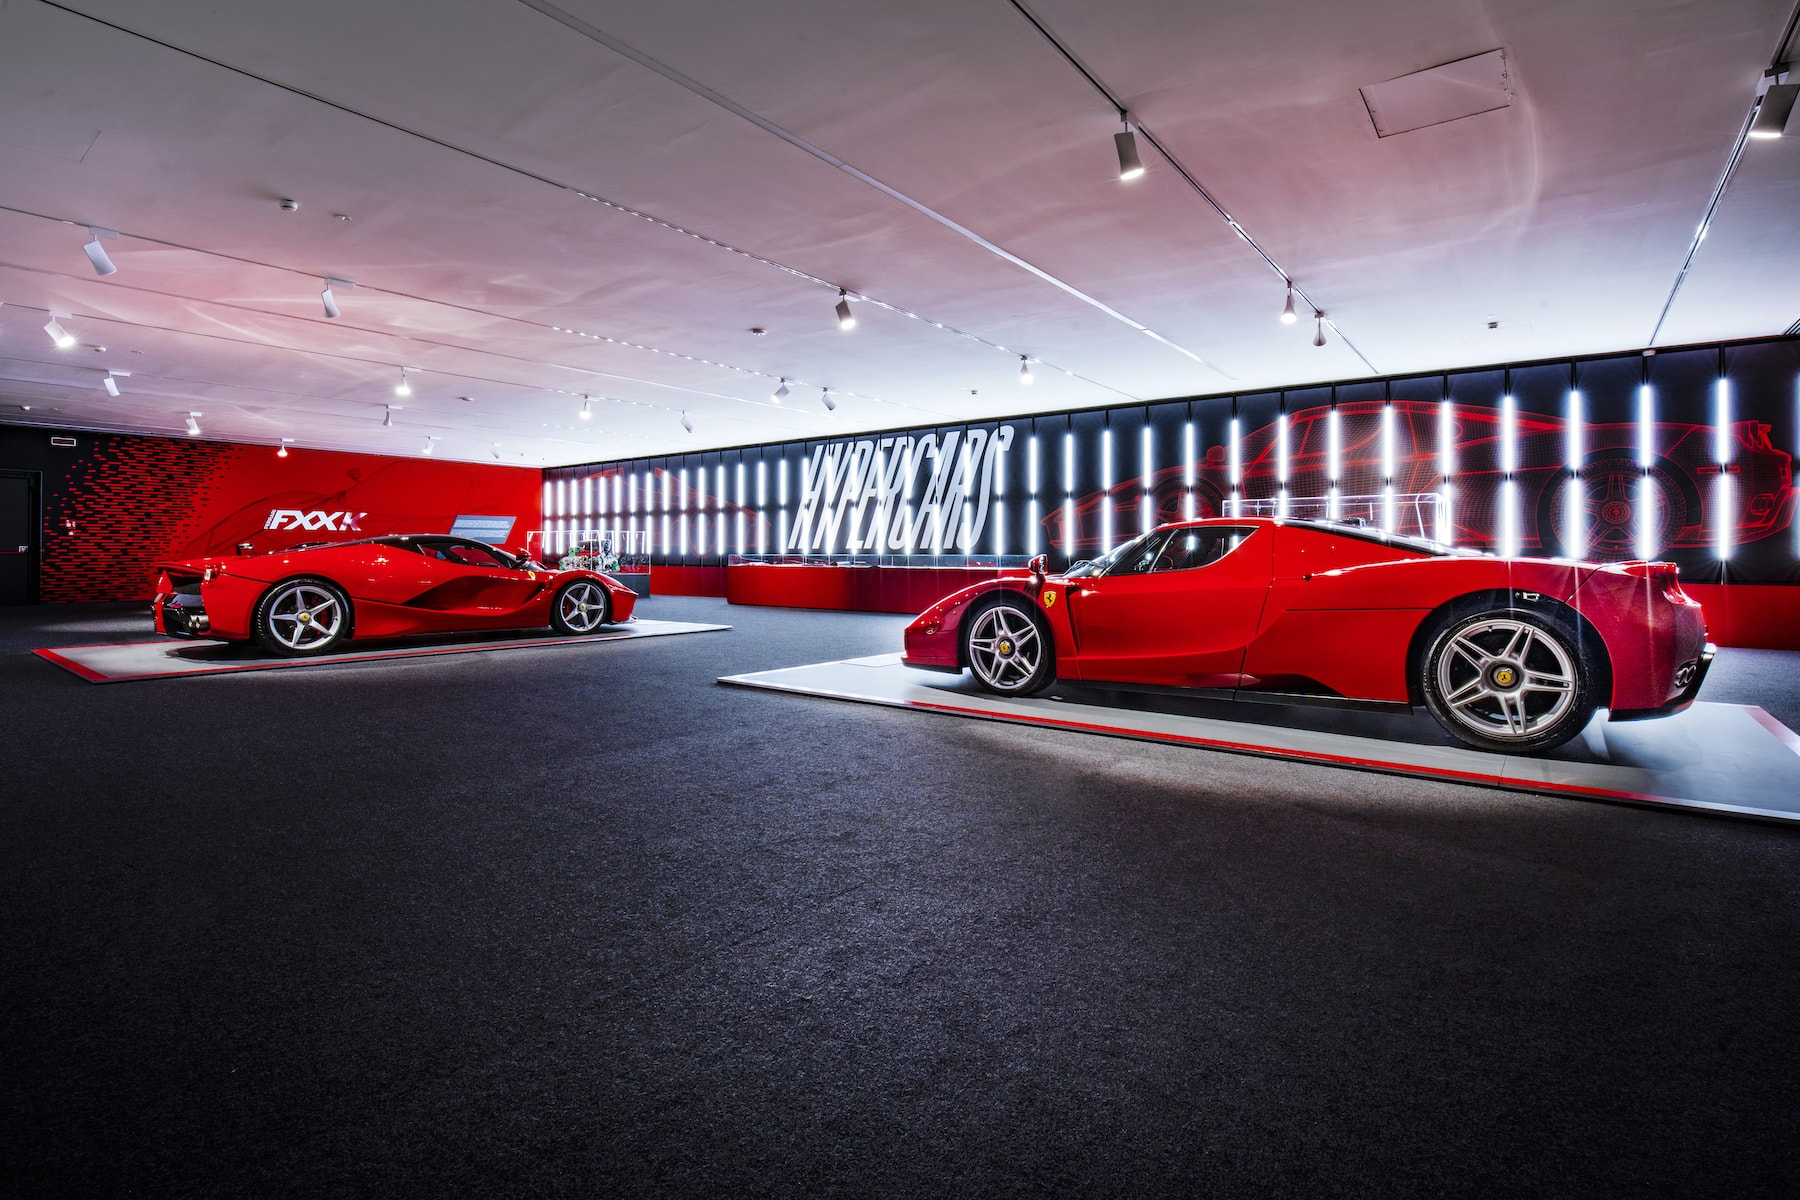 2019 Museo Ferrari 90 years exhibition 12.jpg